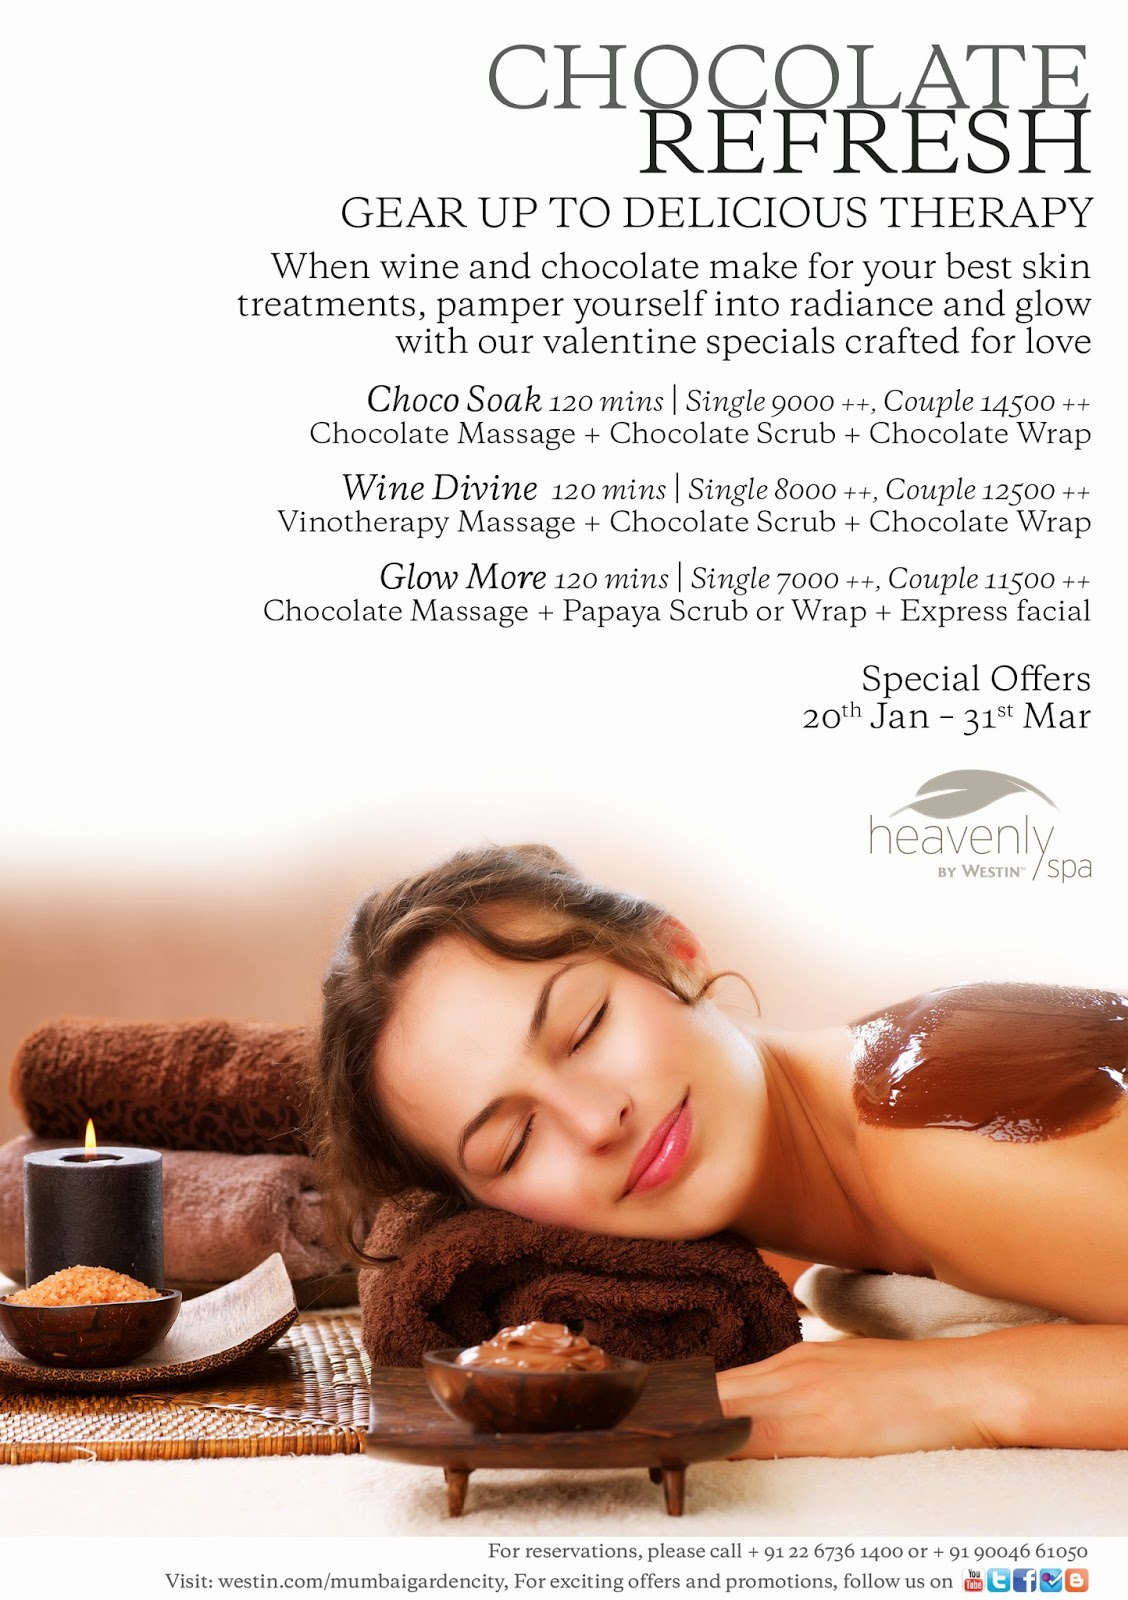 the westin mumbai garden city warm up your love with chocolate